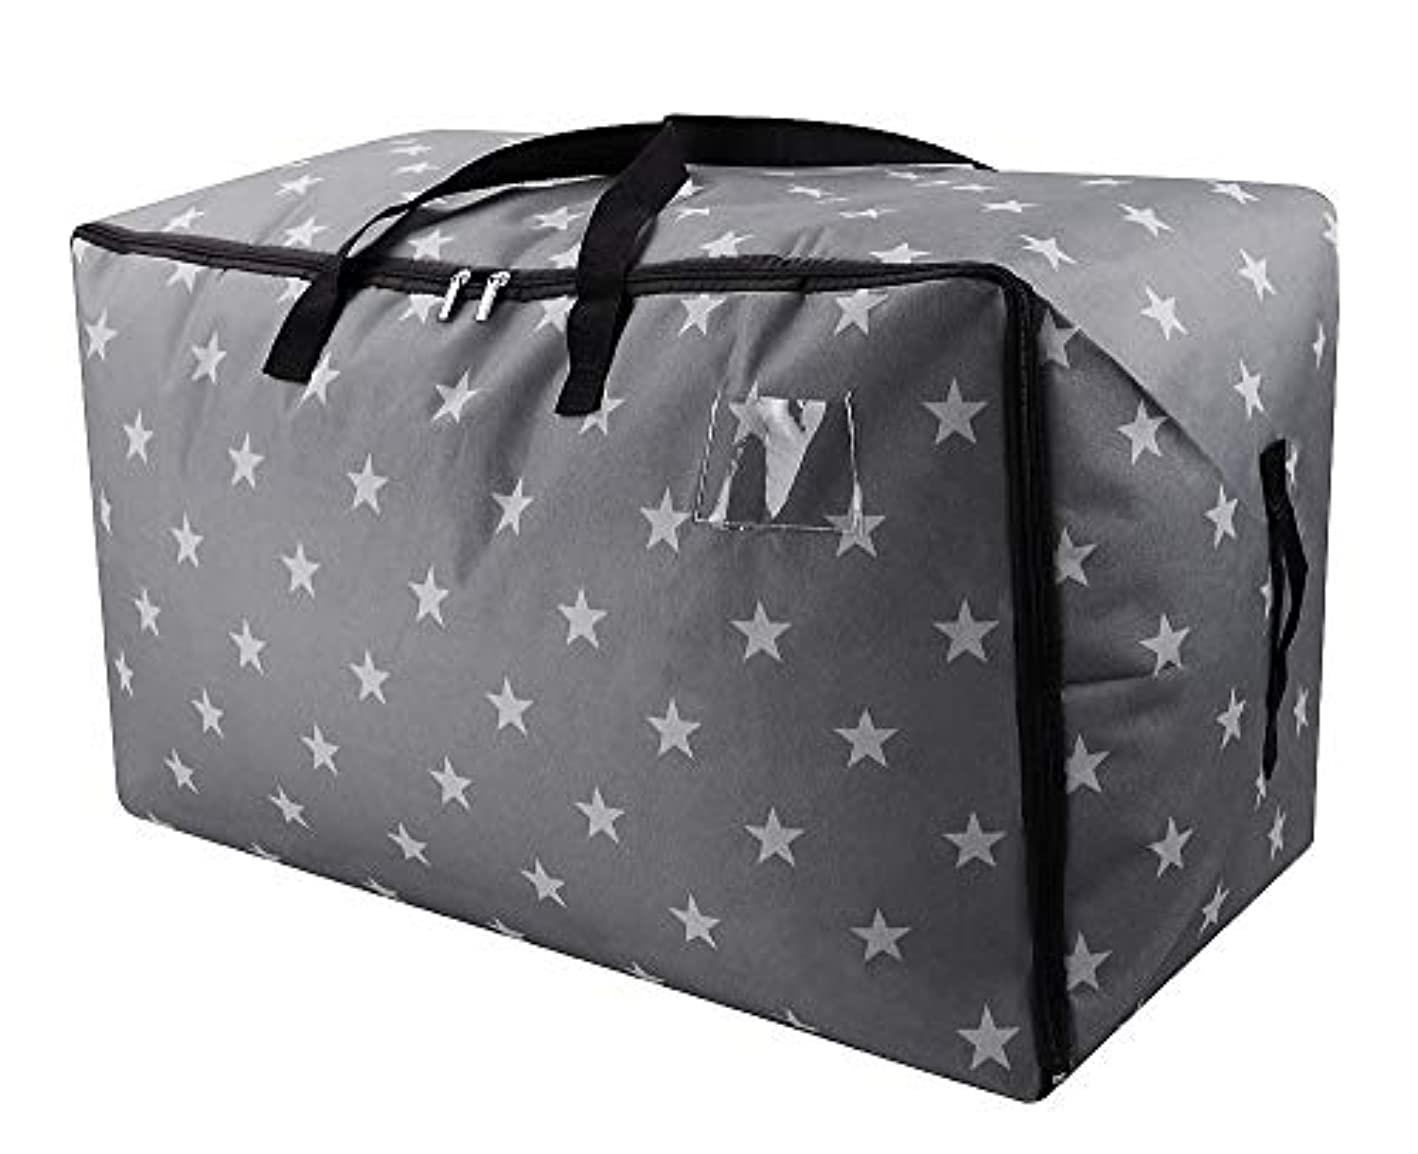 iwill CREATE PRO Extra Large Christmas Tree Ornament Storage Bag, Xmas Storage Containers, Large Traveling Storage Duffle Bags, Gray Stars